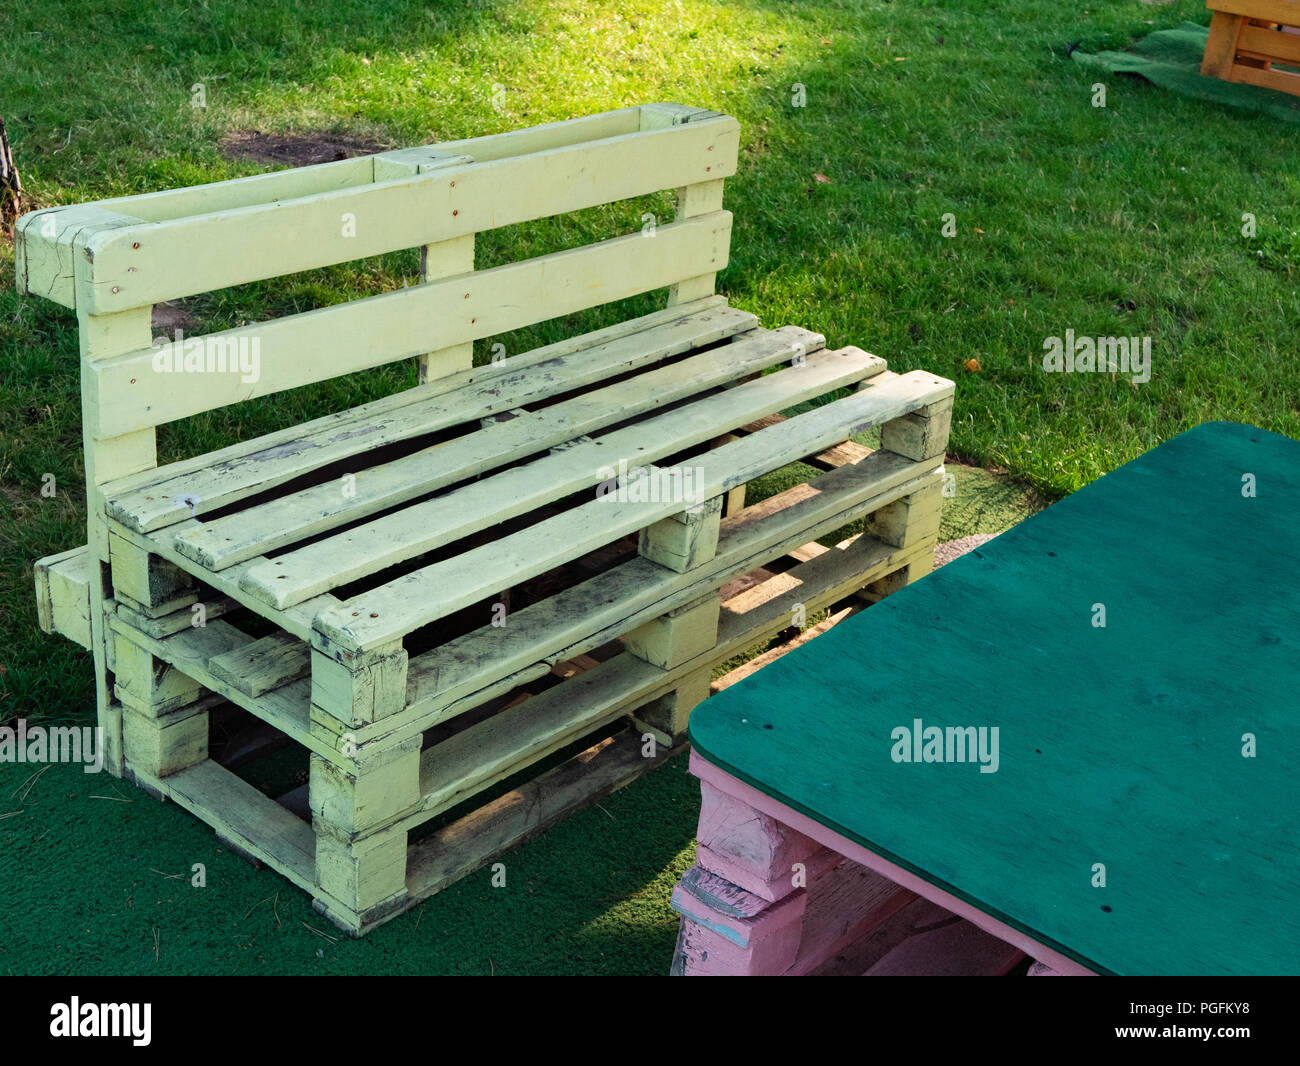 close-up shot of wooden pallet sofa loft style at countryside cafe. lounge chill out relax comfort zone outdoor. summer sunny day Stock Photo